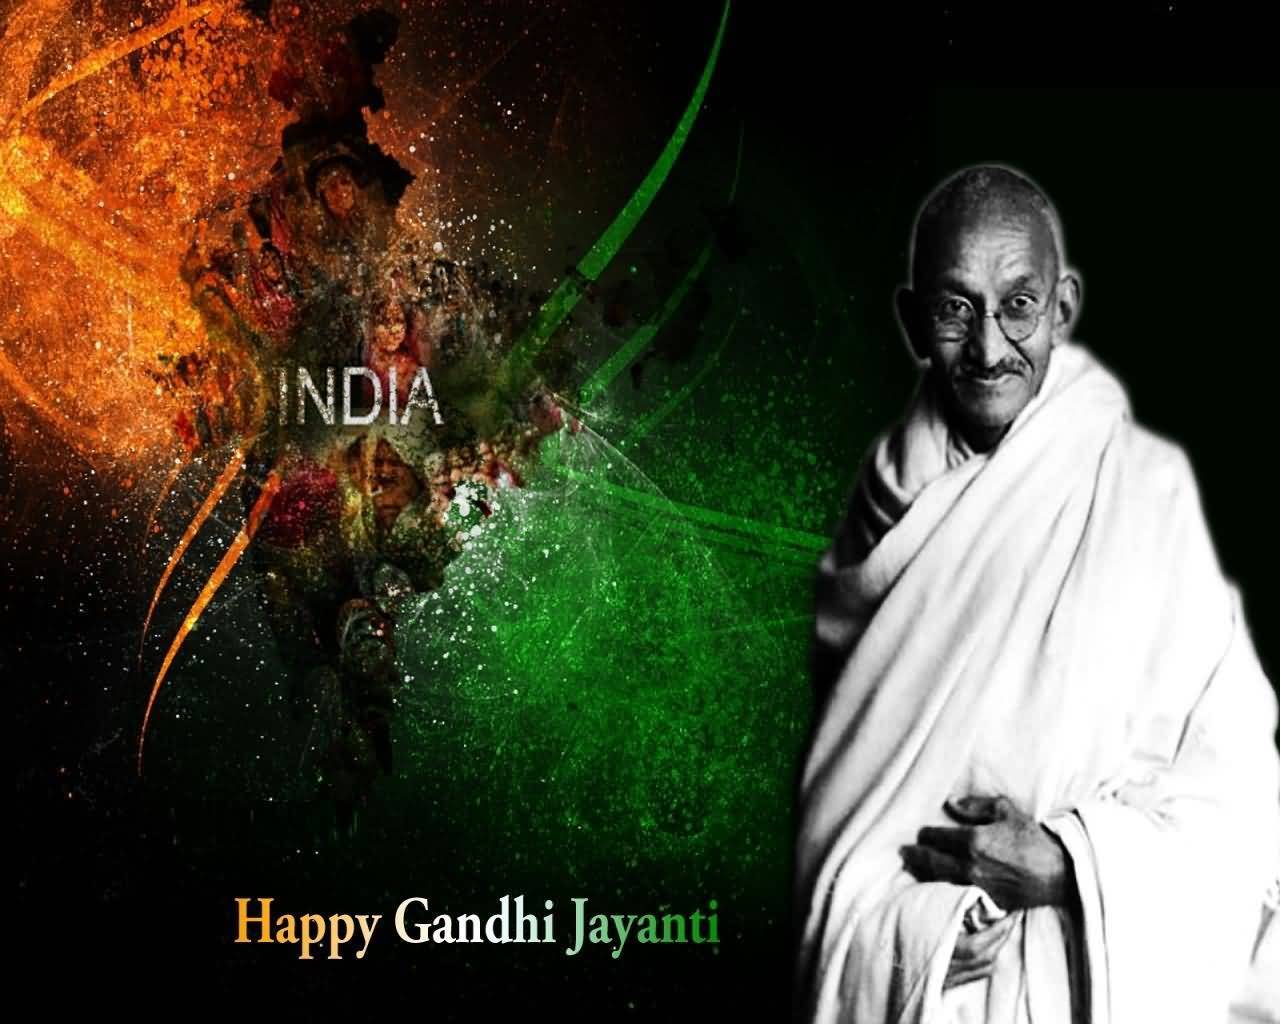 60 Best Gandhi Jayanti Wishes Pictures And Images 1280x1024